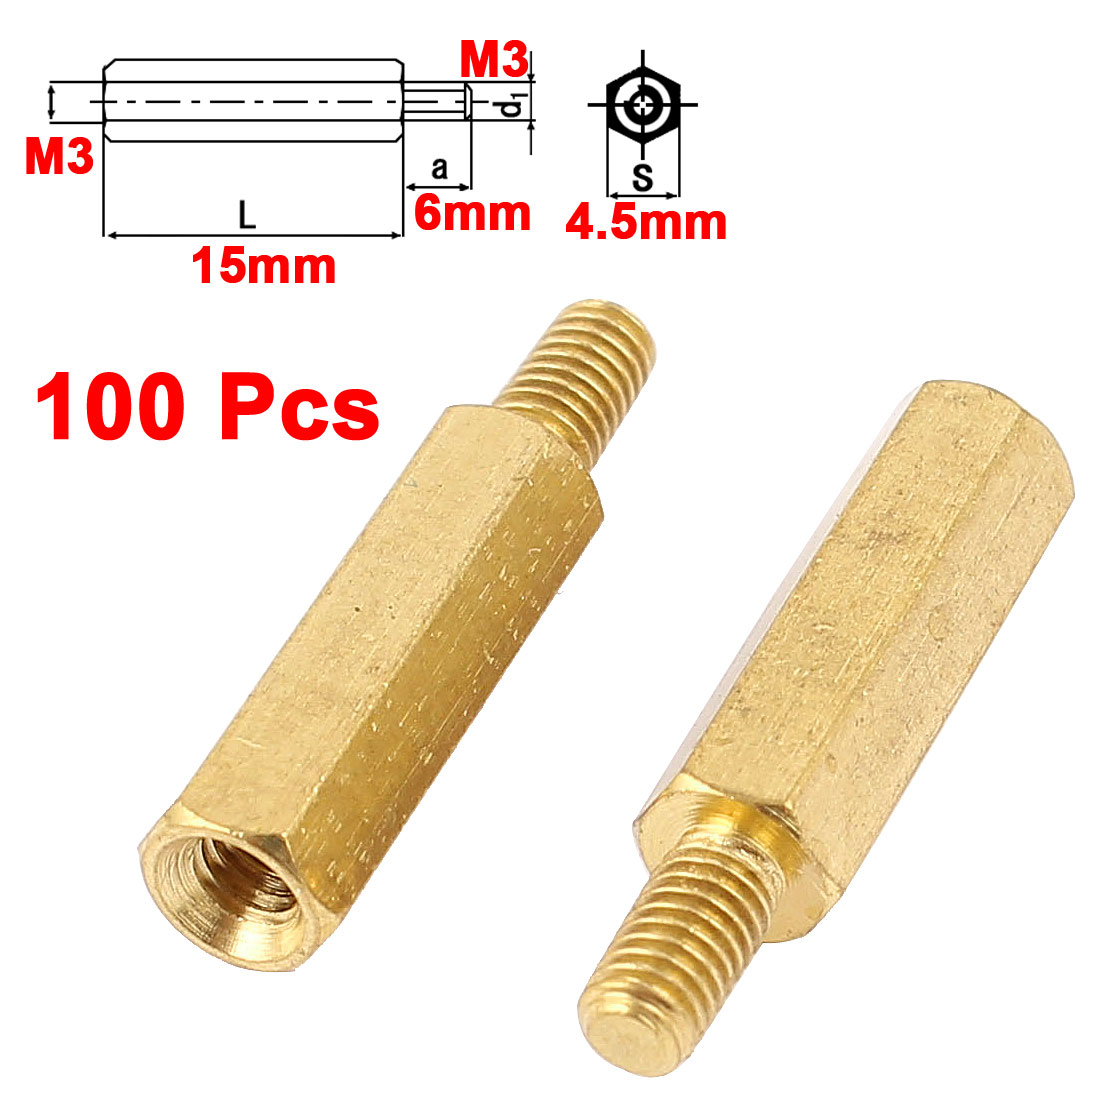 100Pcs M3 Male to Female Thread 15mm+6mm Brass Hexagon Standoff Spacer Pillar for PCB Board